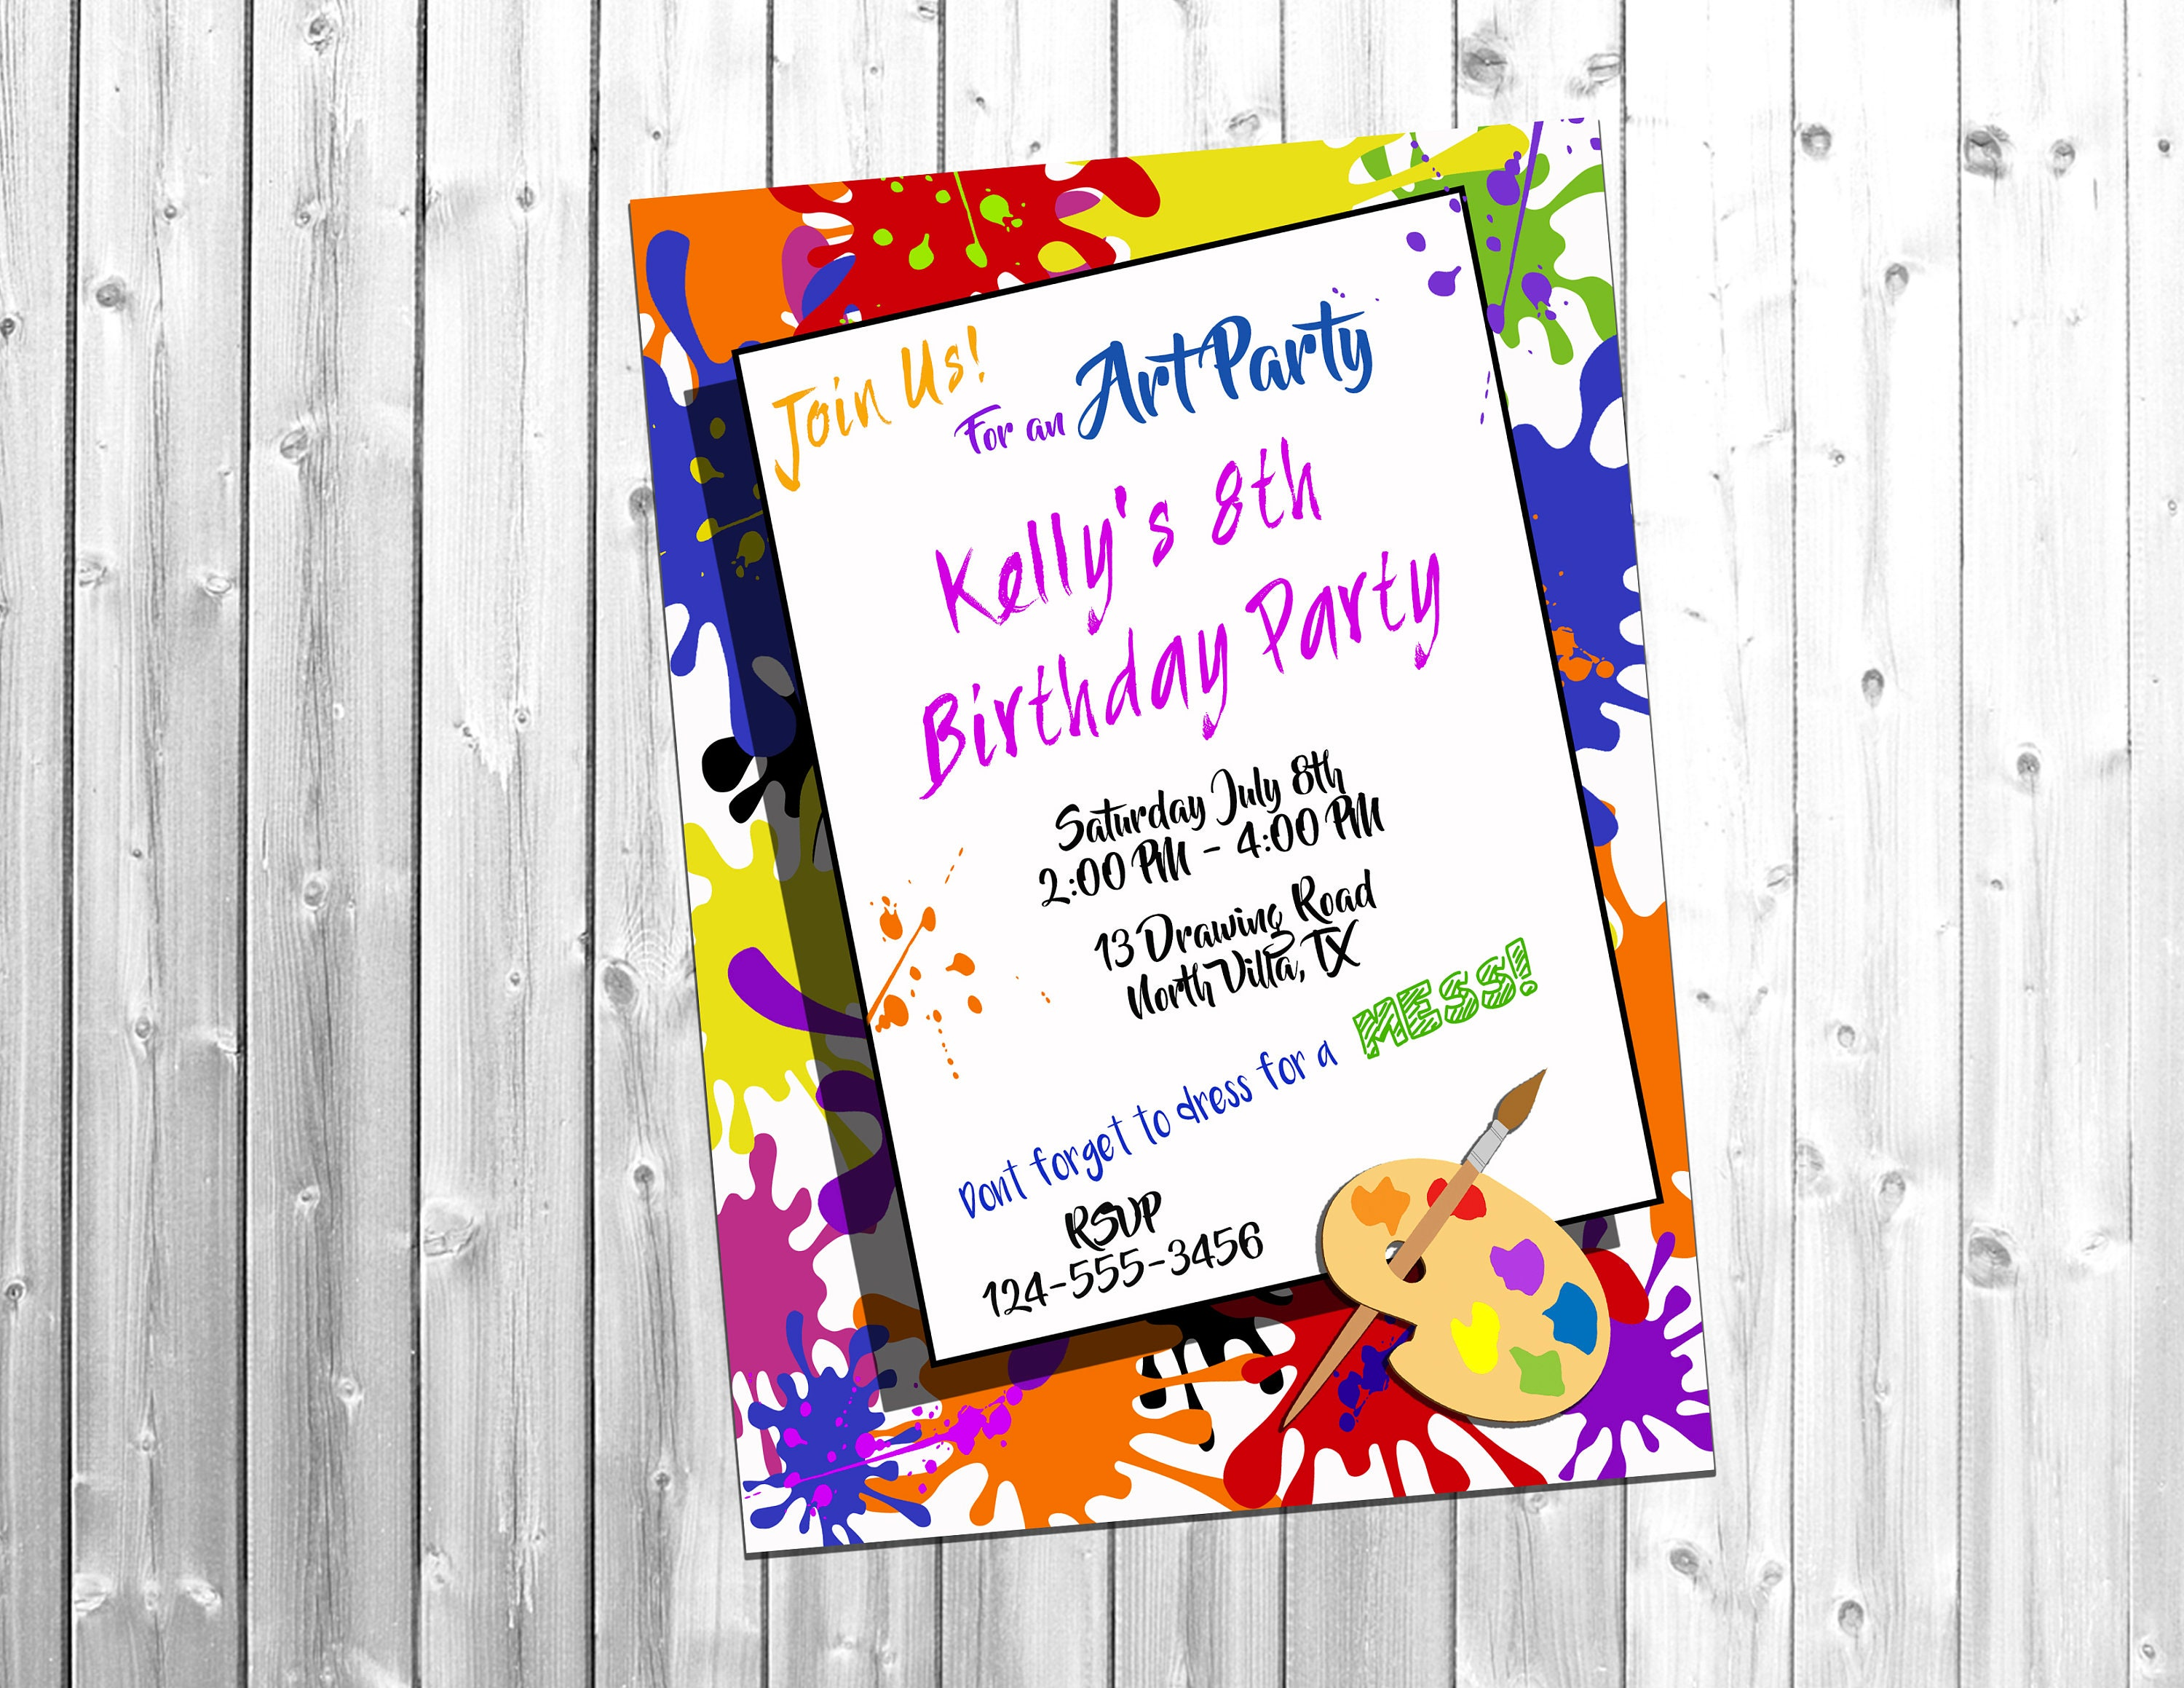 Paint Party Art Party Art Birthday Party Party Invite | Etsy